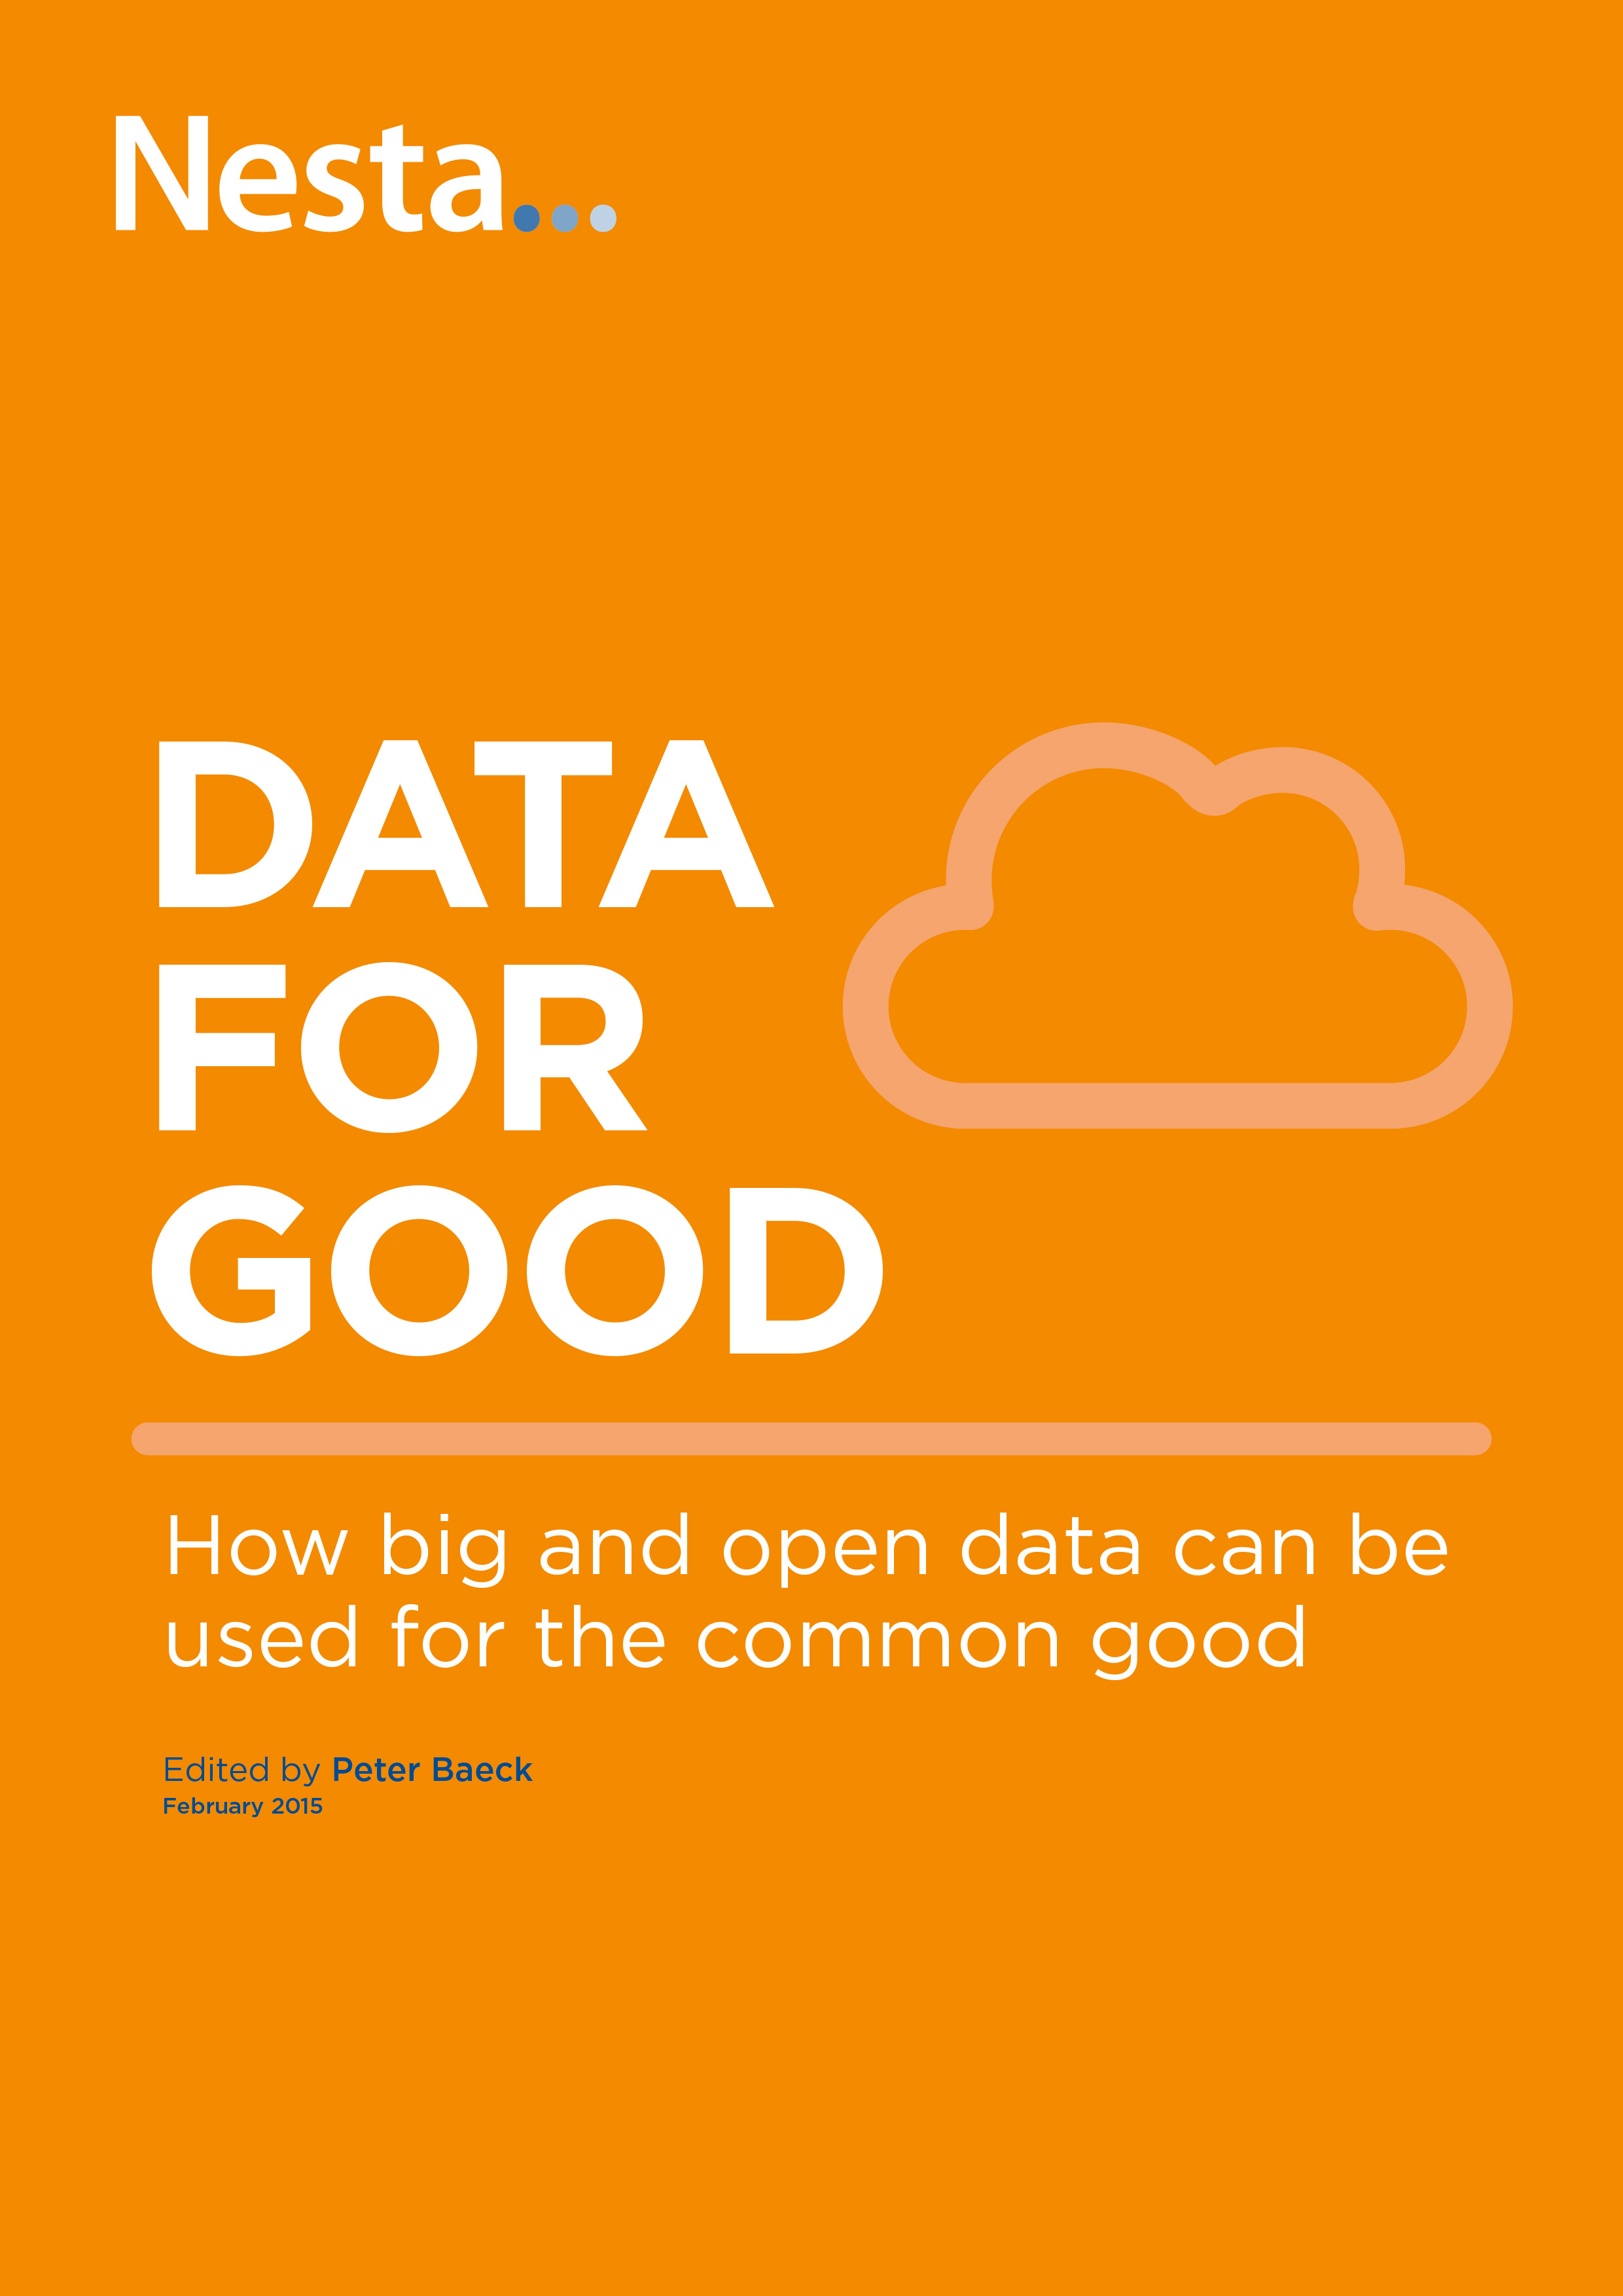 Nesta.. Data for Good: How big and open data can be used for the common good -